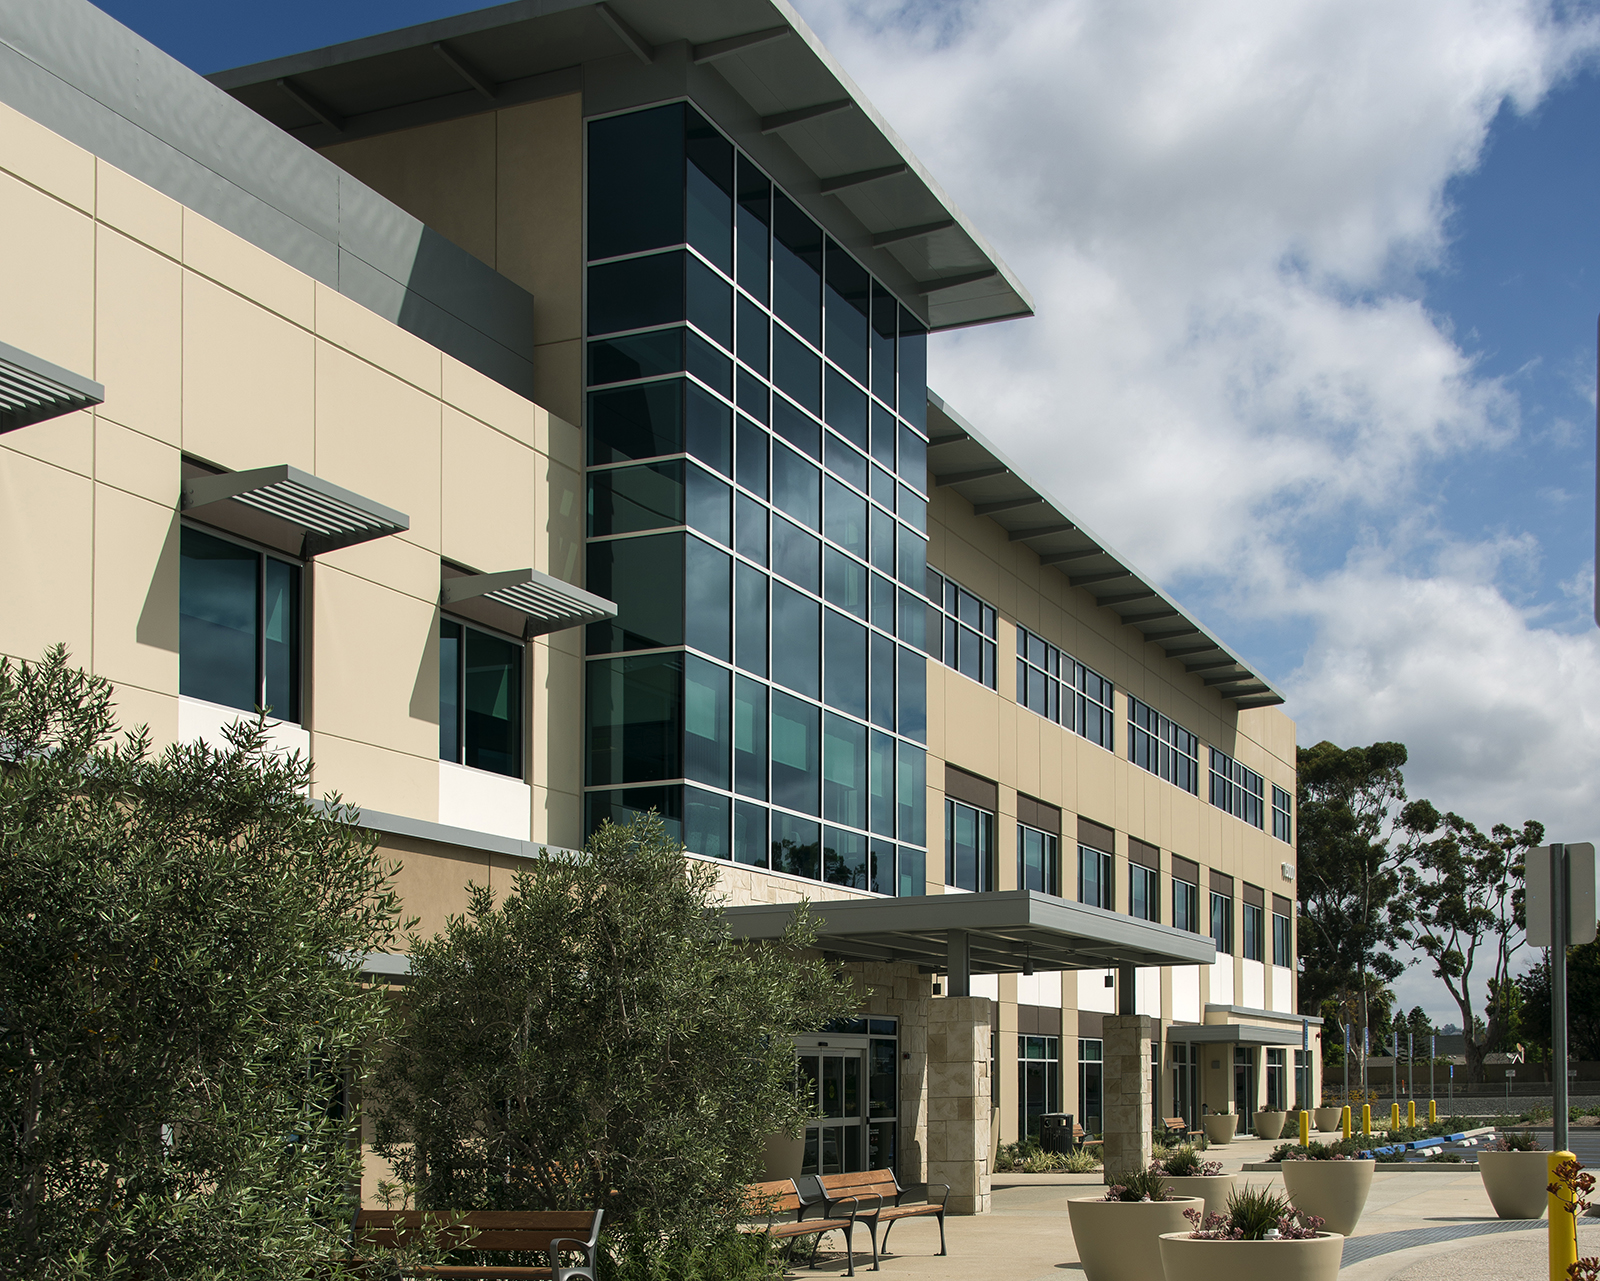 Tustin Legacy Medical Office Building